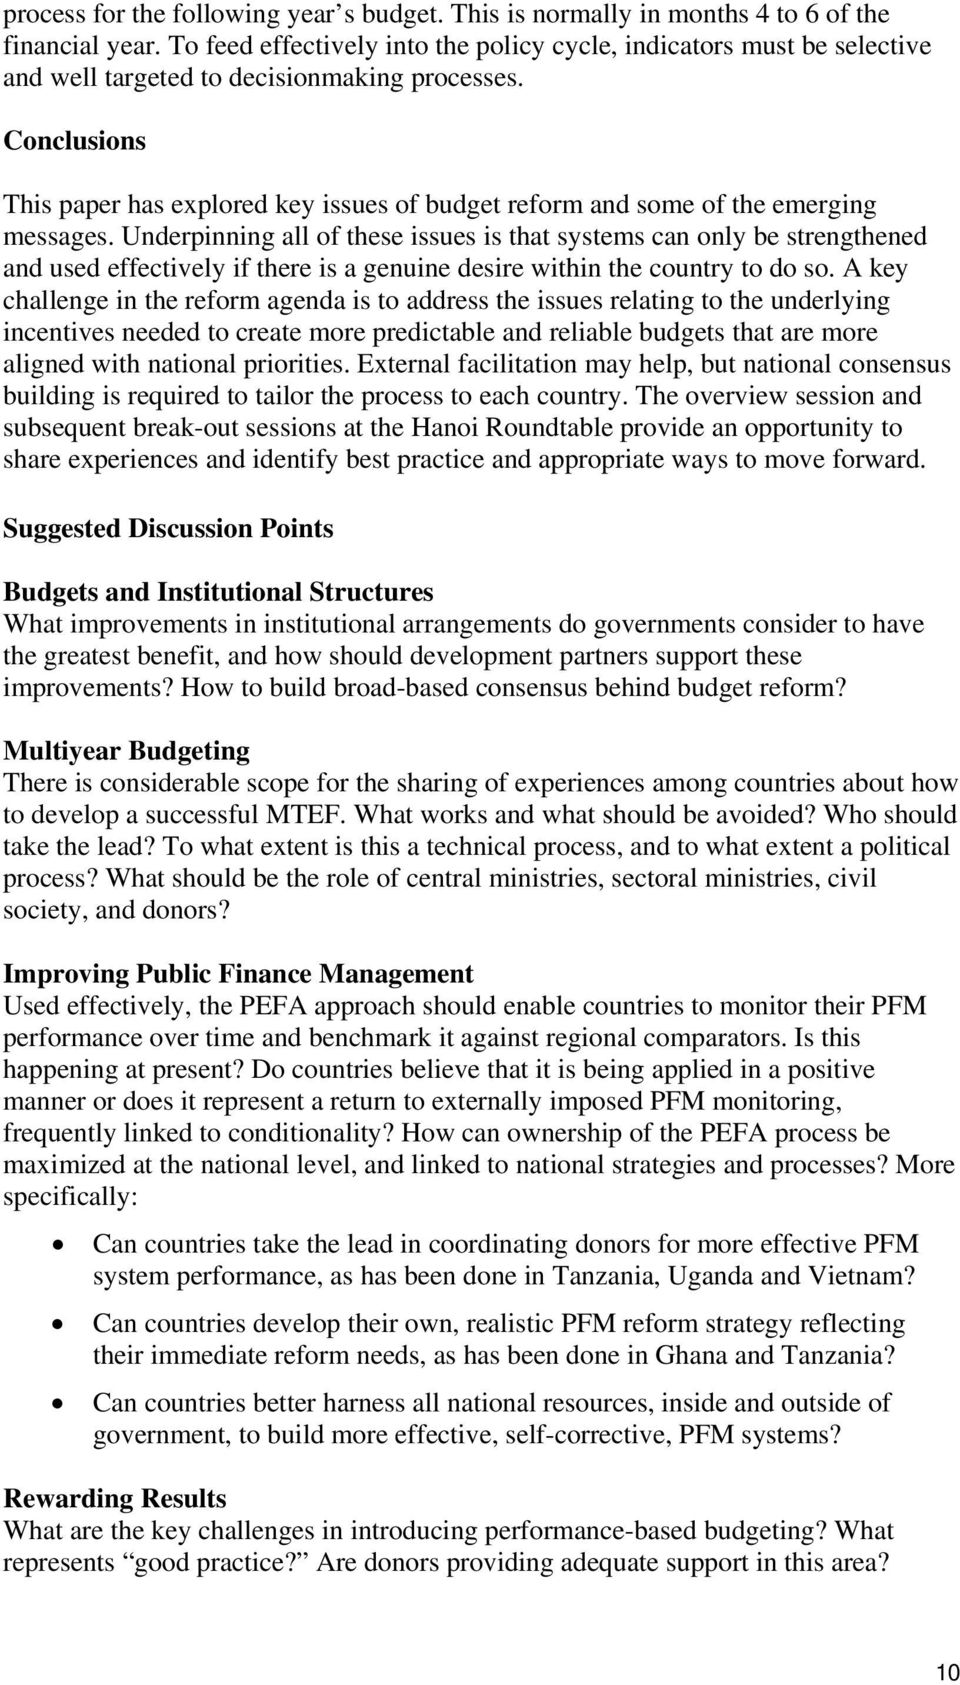 Conclusions This paper has explored key issues of budget reform and some of the emerging messages.